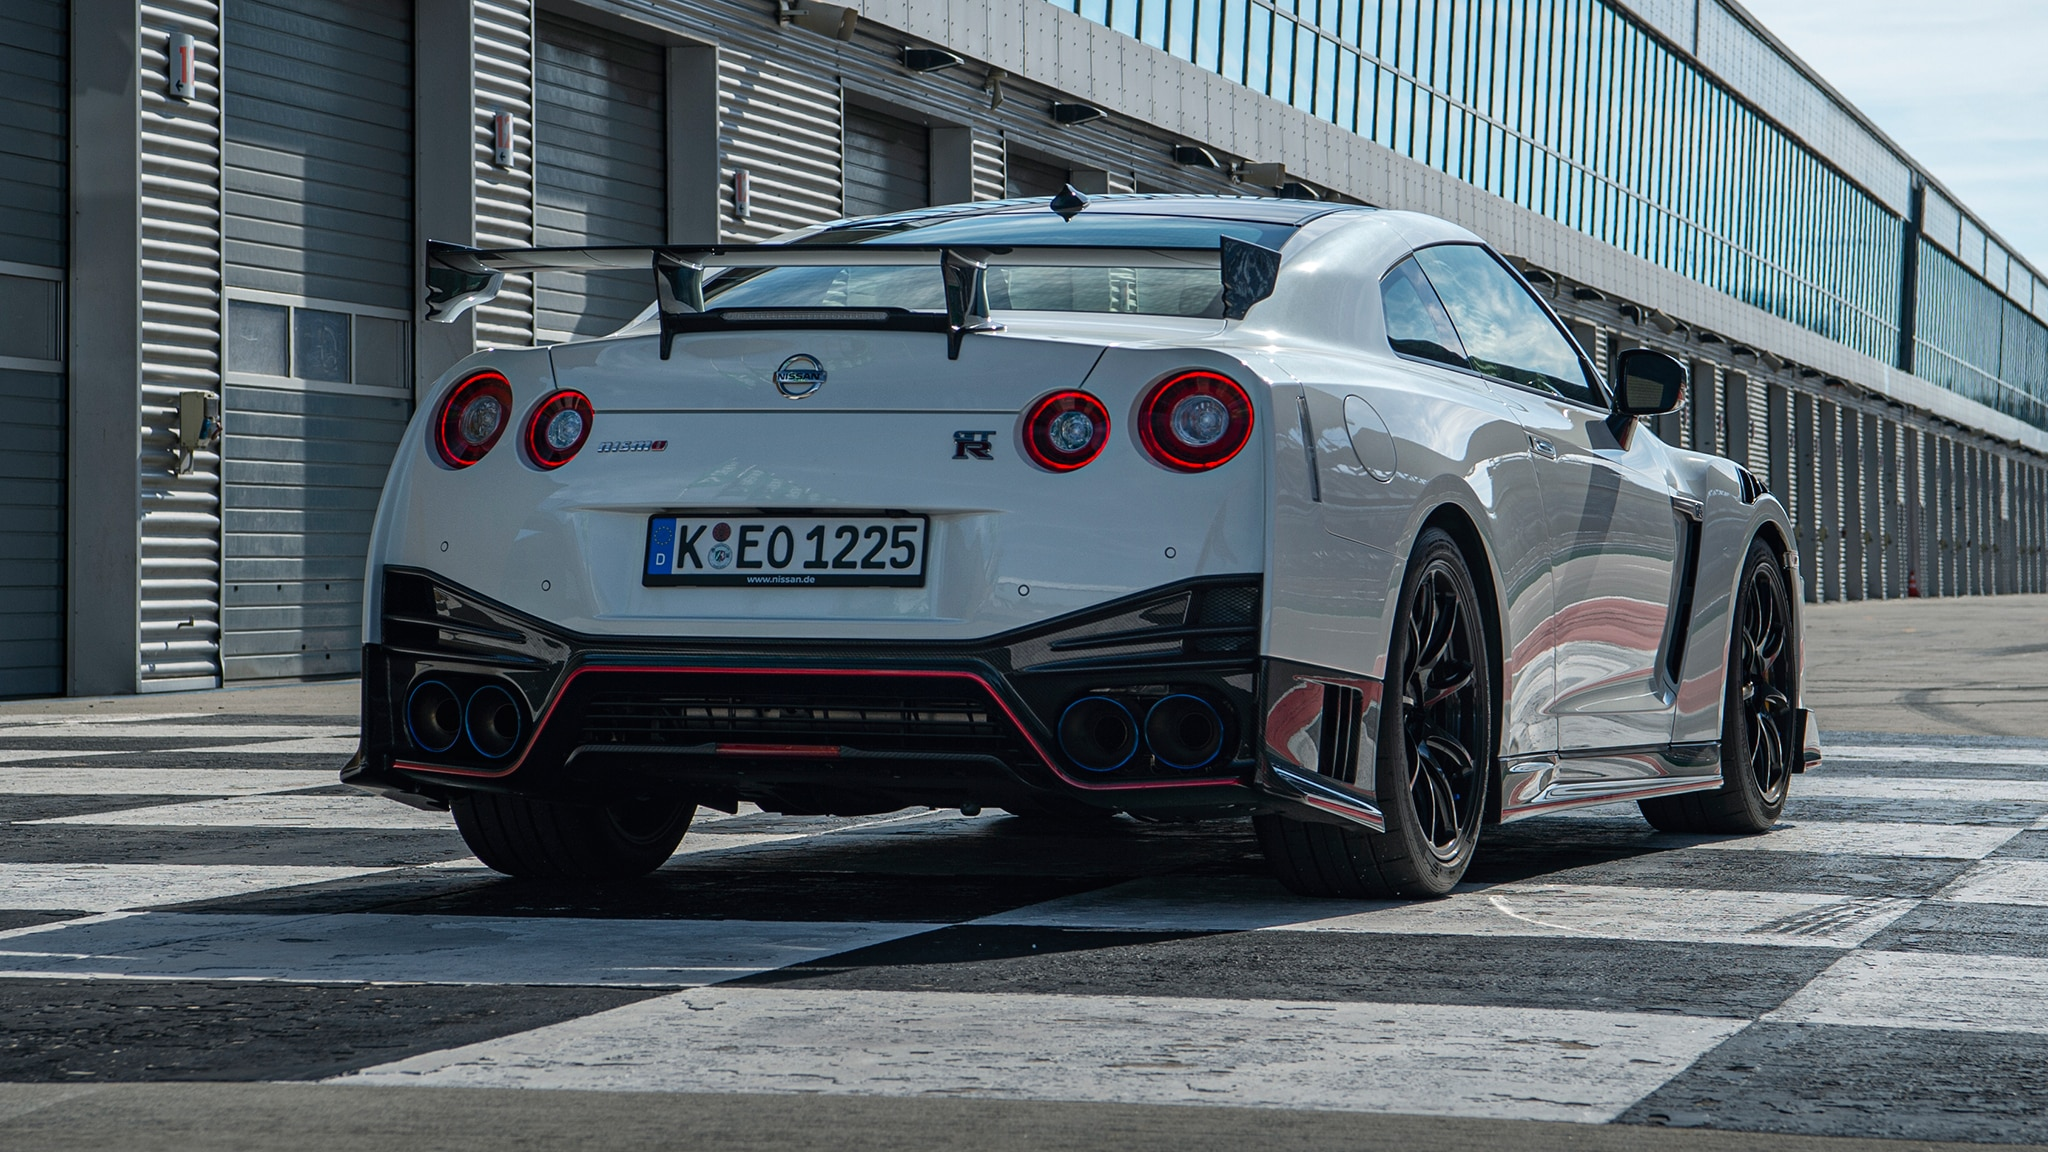 There S Now A Nissan Gt R That Costs 212 000 Automobile